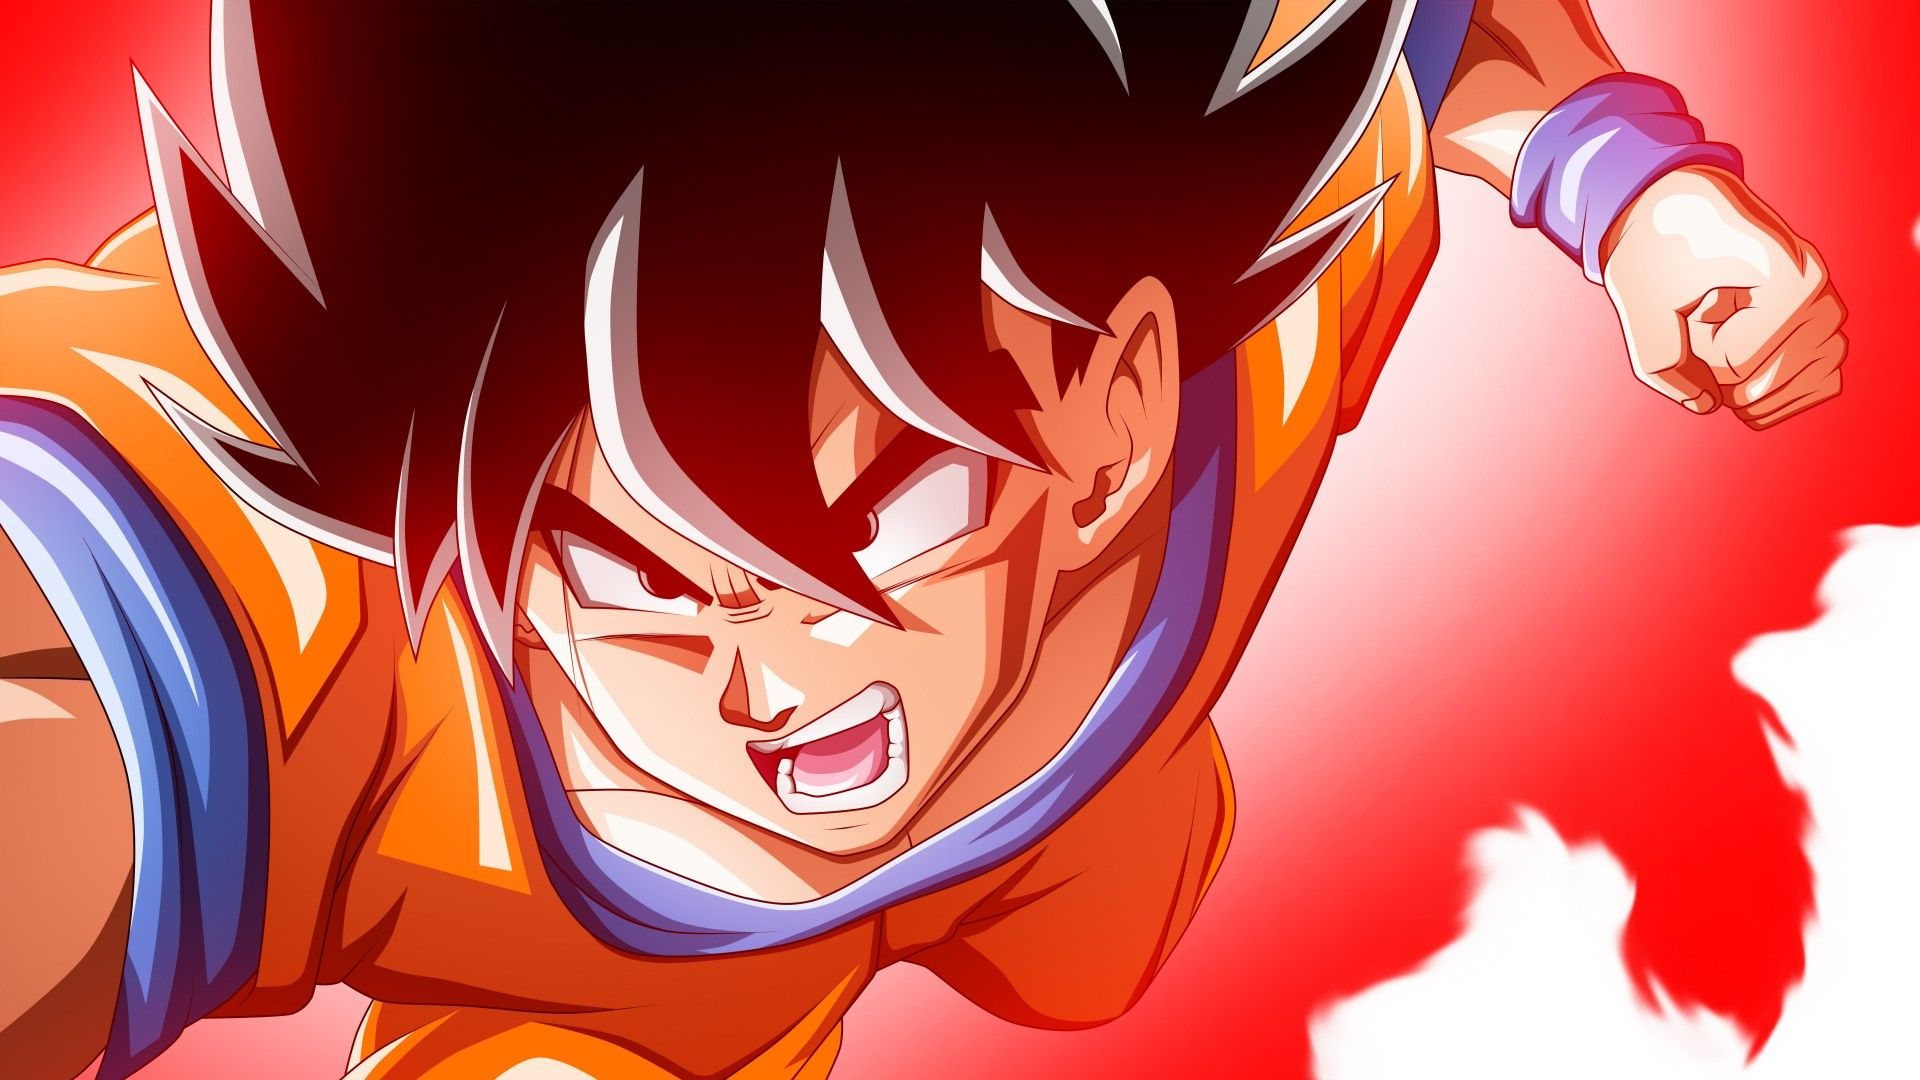 Download Wallpapers Of Goku Dragon Ball Super 4k 5k Anime 7527 Available In Hd 4k Resoluti Anime Dragon Ball Super Dragon Ball Super Manga Goku Artwork